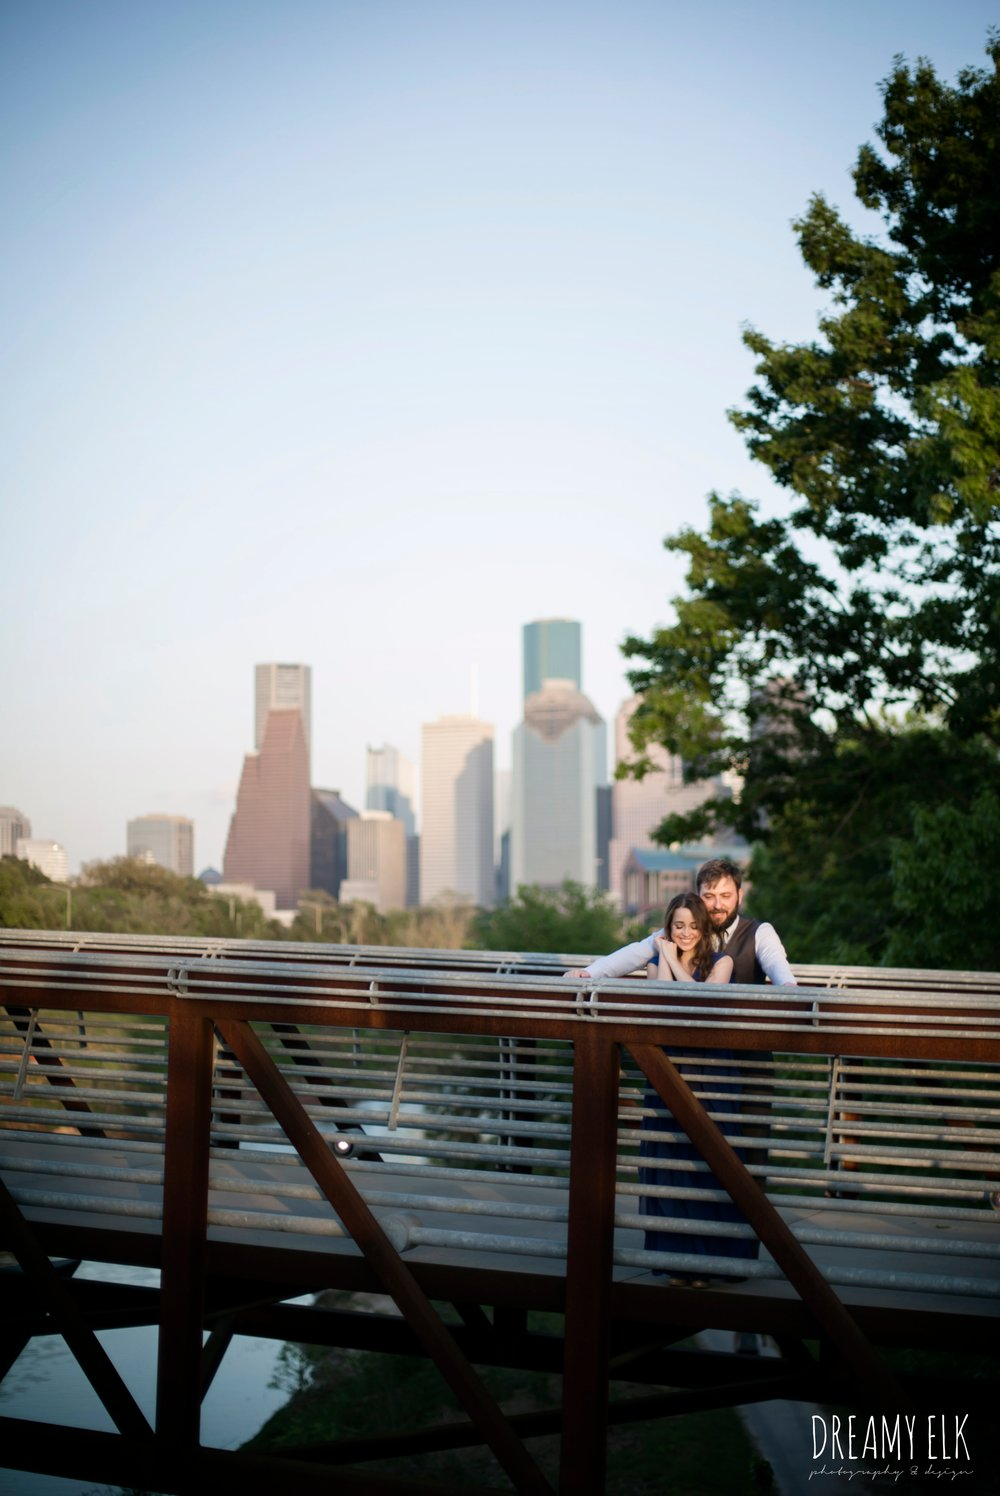 skyline, spring, march, formal engagement photo, allen parkway, houston, texas {dreamy elk photography and design}